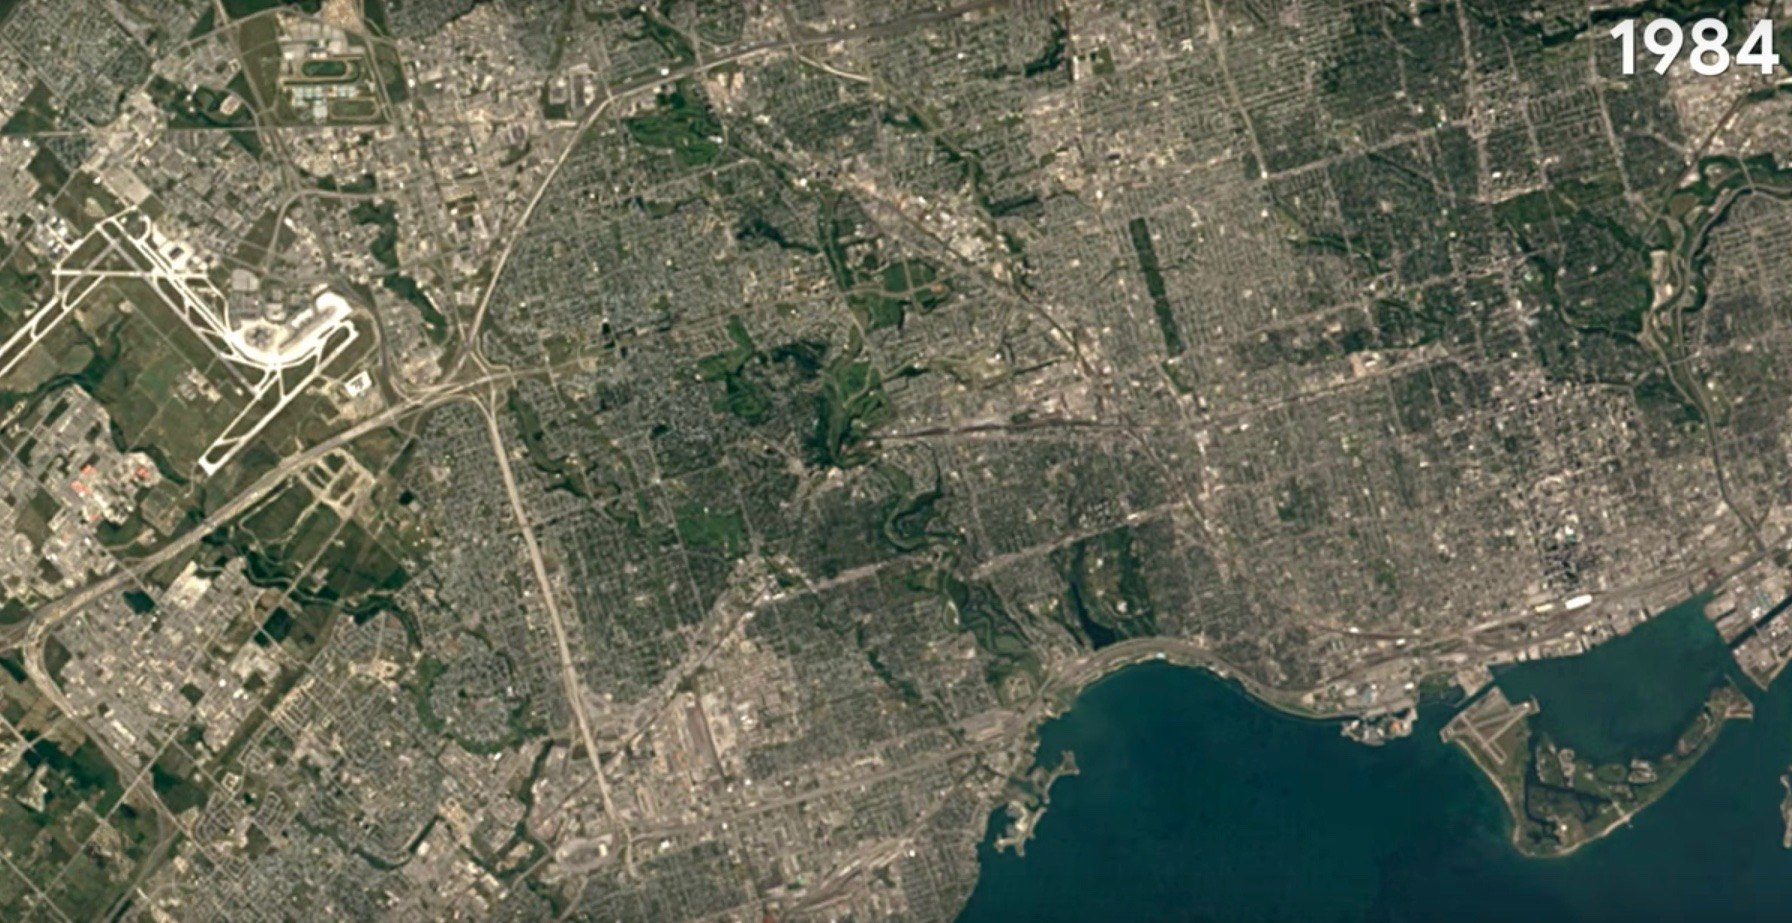 Google Earth releases timelapse of Toronto over the last 35 years (VIDEO)